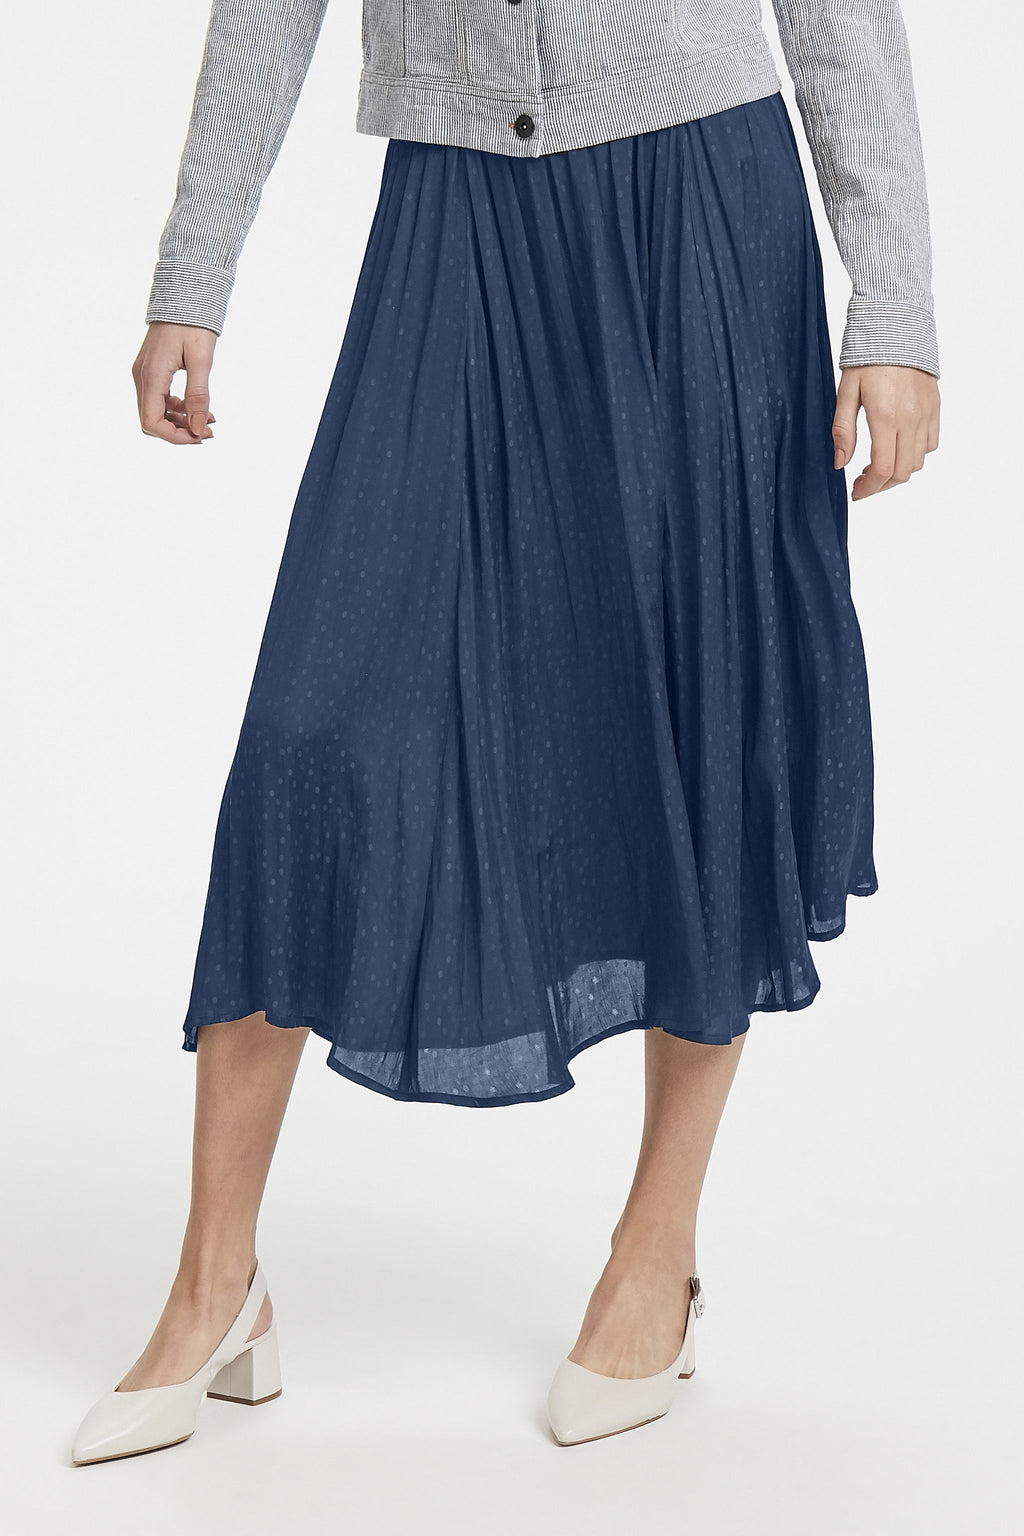 CHILLA midi skirt - total eclipse